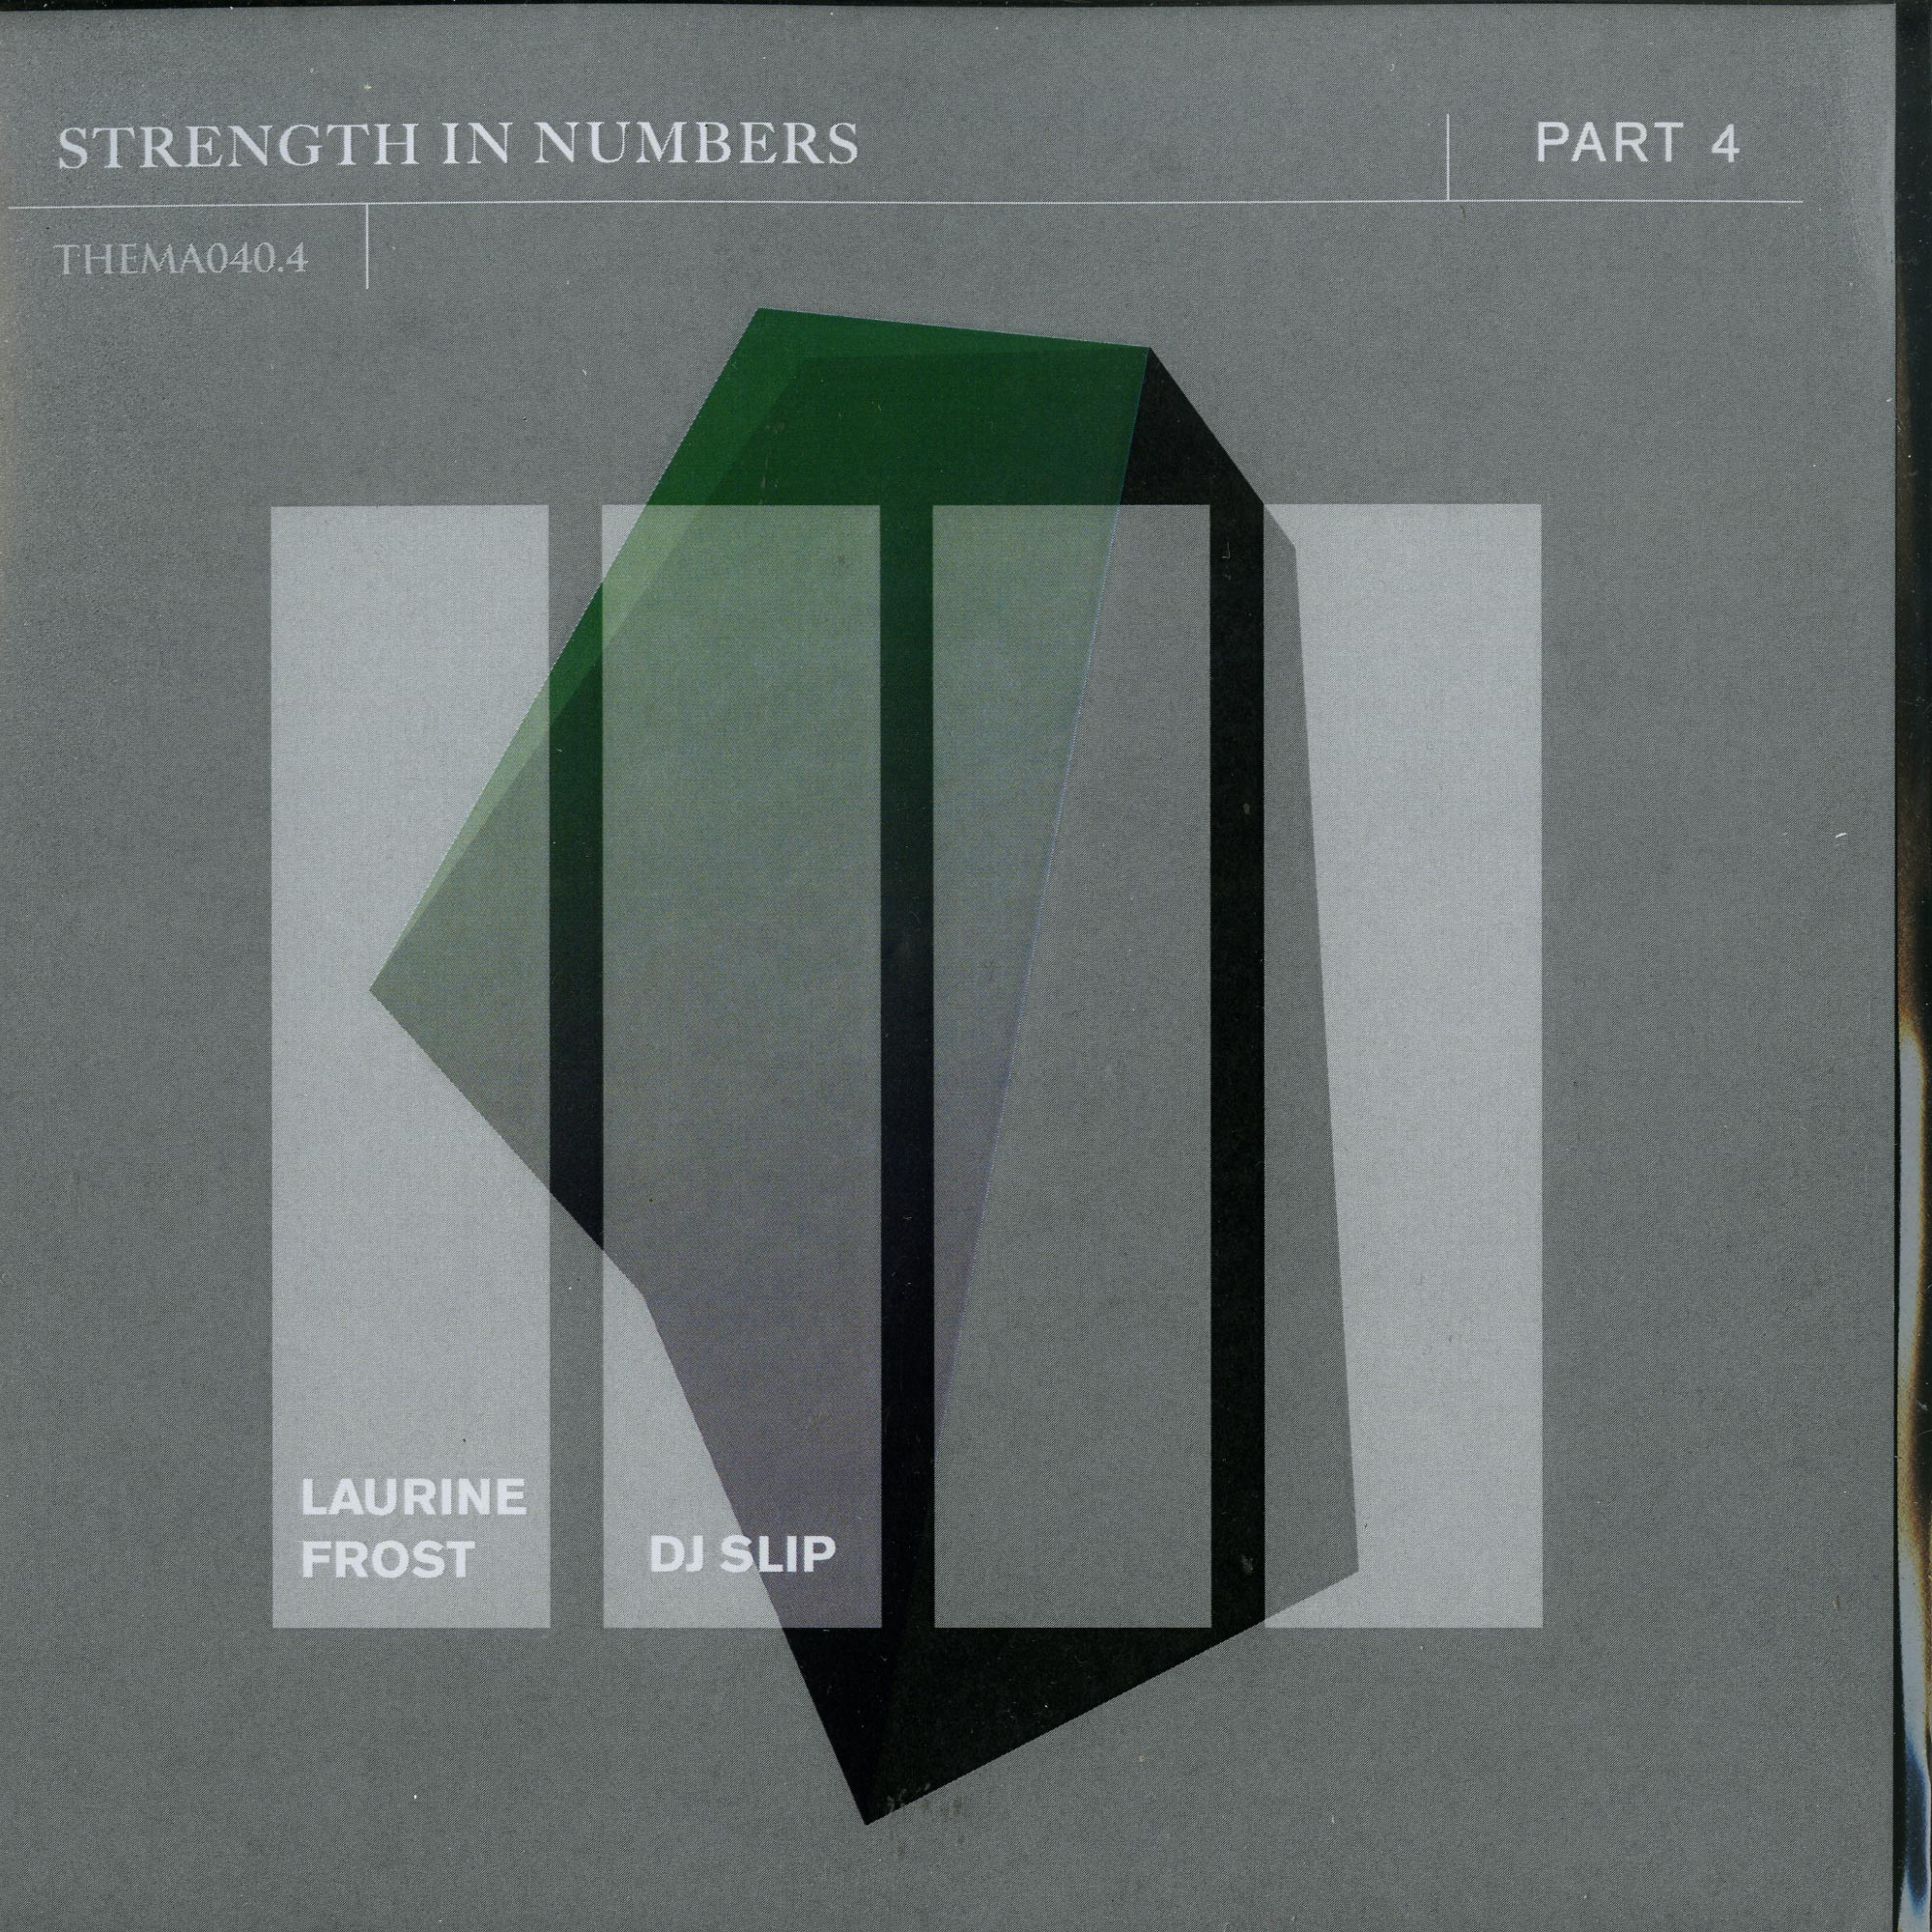 Laurine Frost, DJ Slip - STRENGTH IN NUMBERS PT. 4